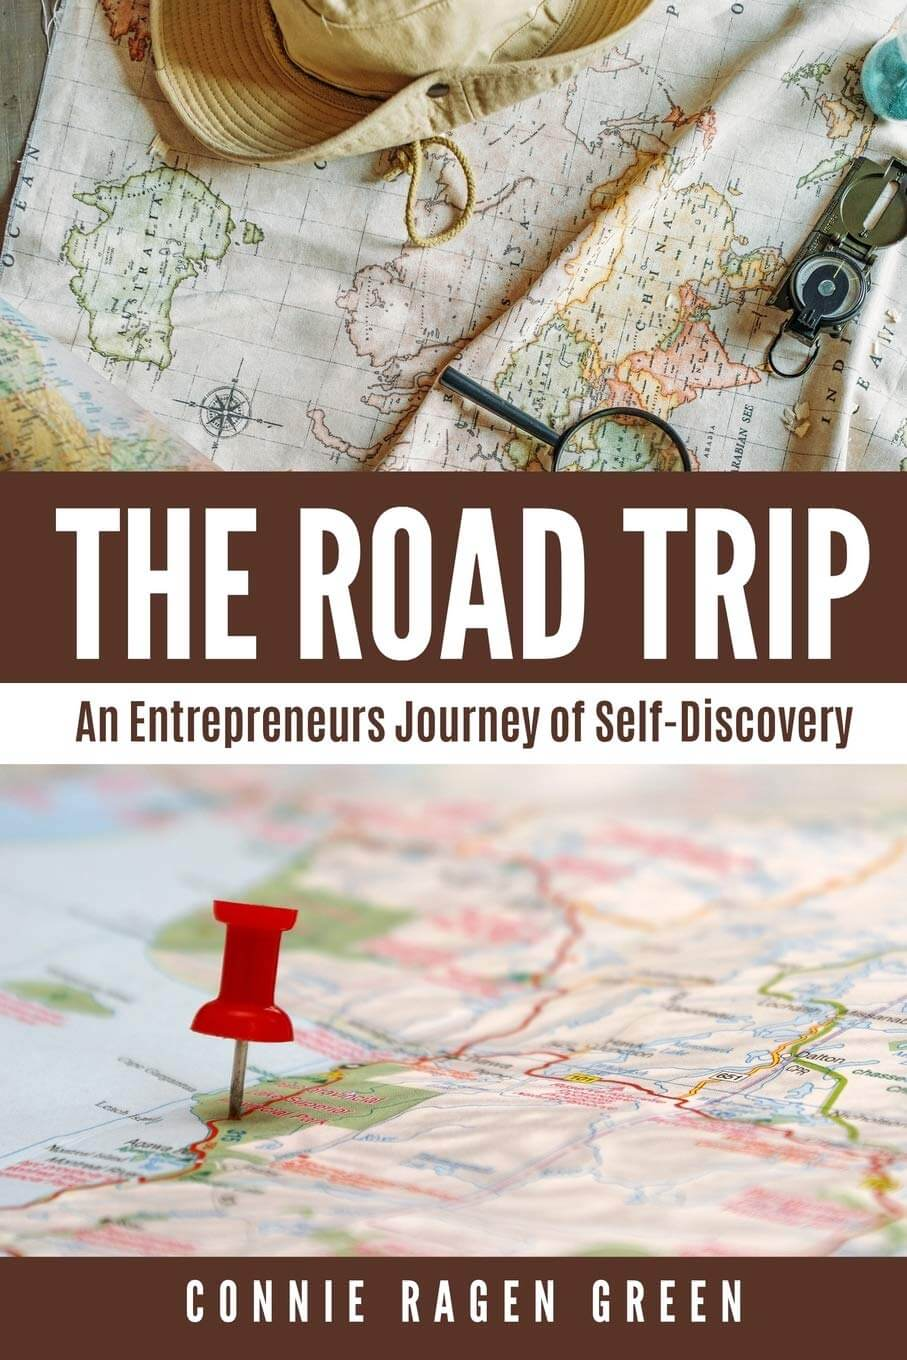 The Road Trip: An Entrepreneur's Journey of Self-Discovery